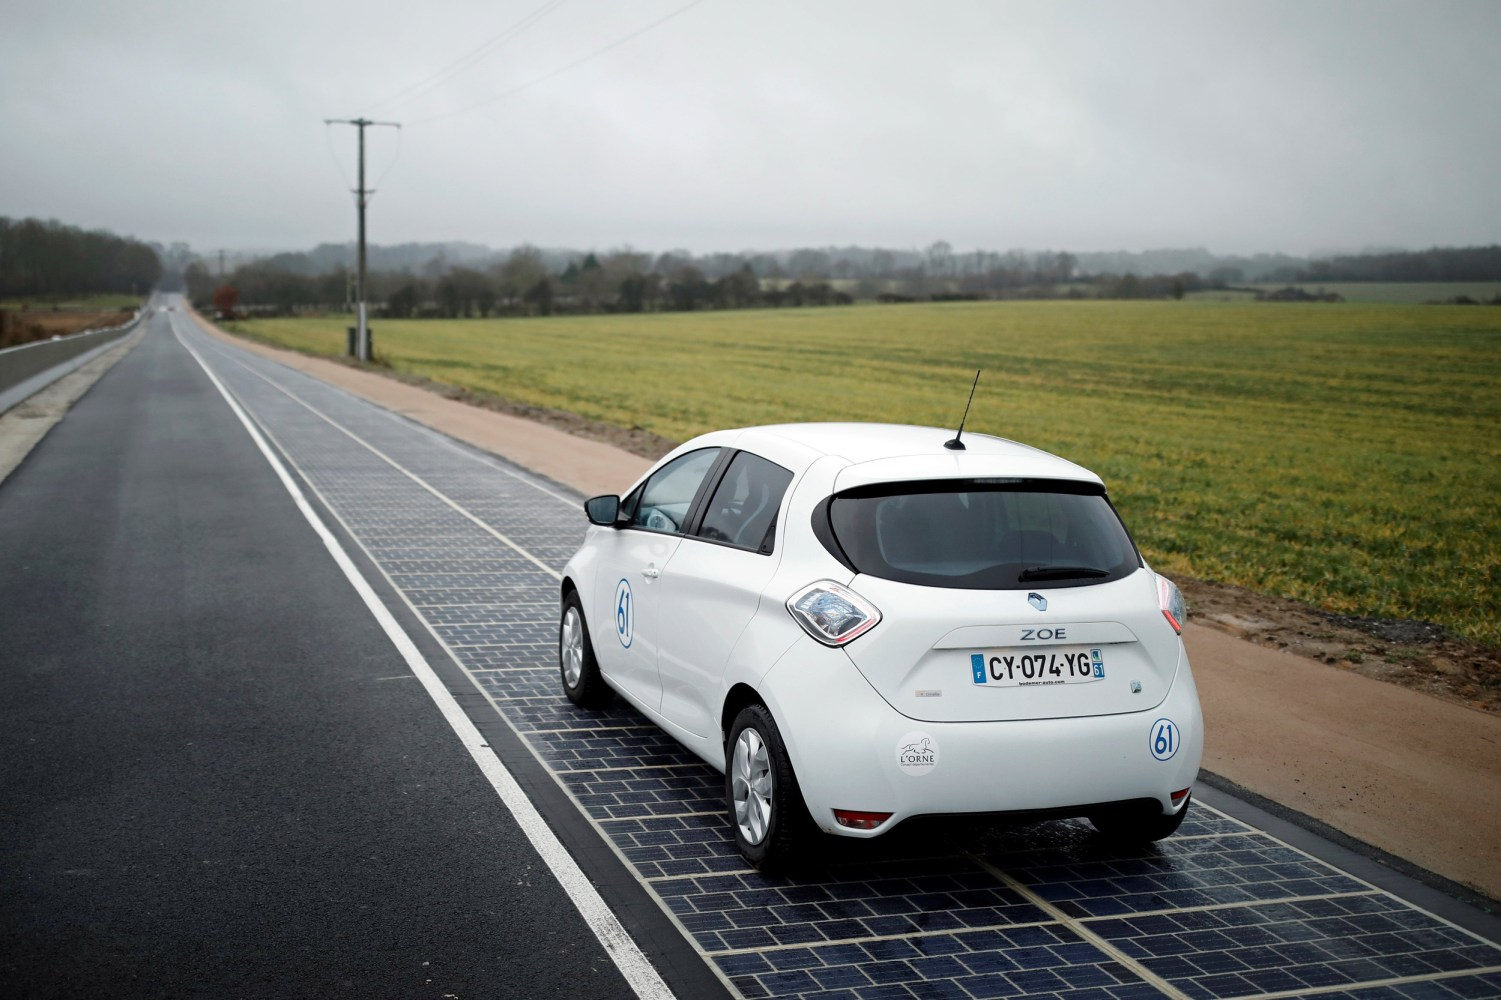 World\'s First Solar Road Opens in Normandy, France - NBC News